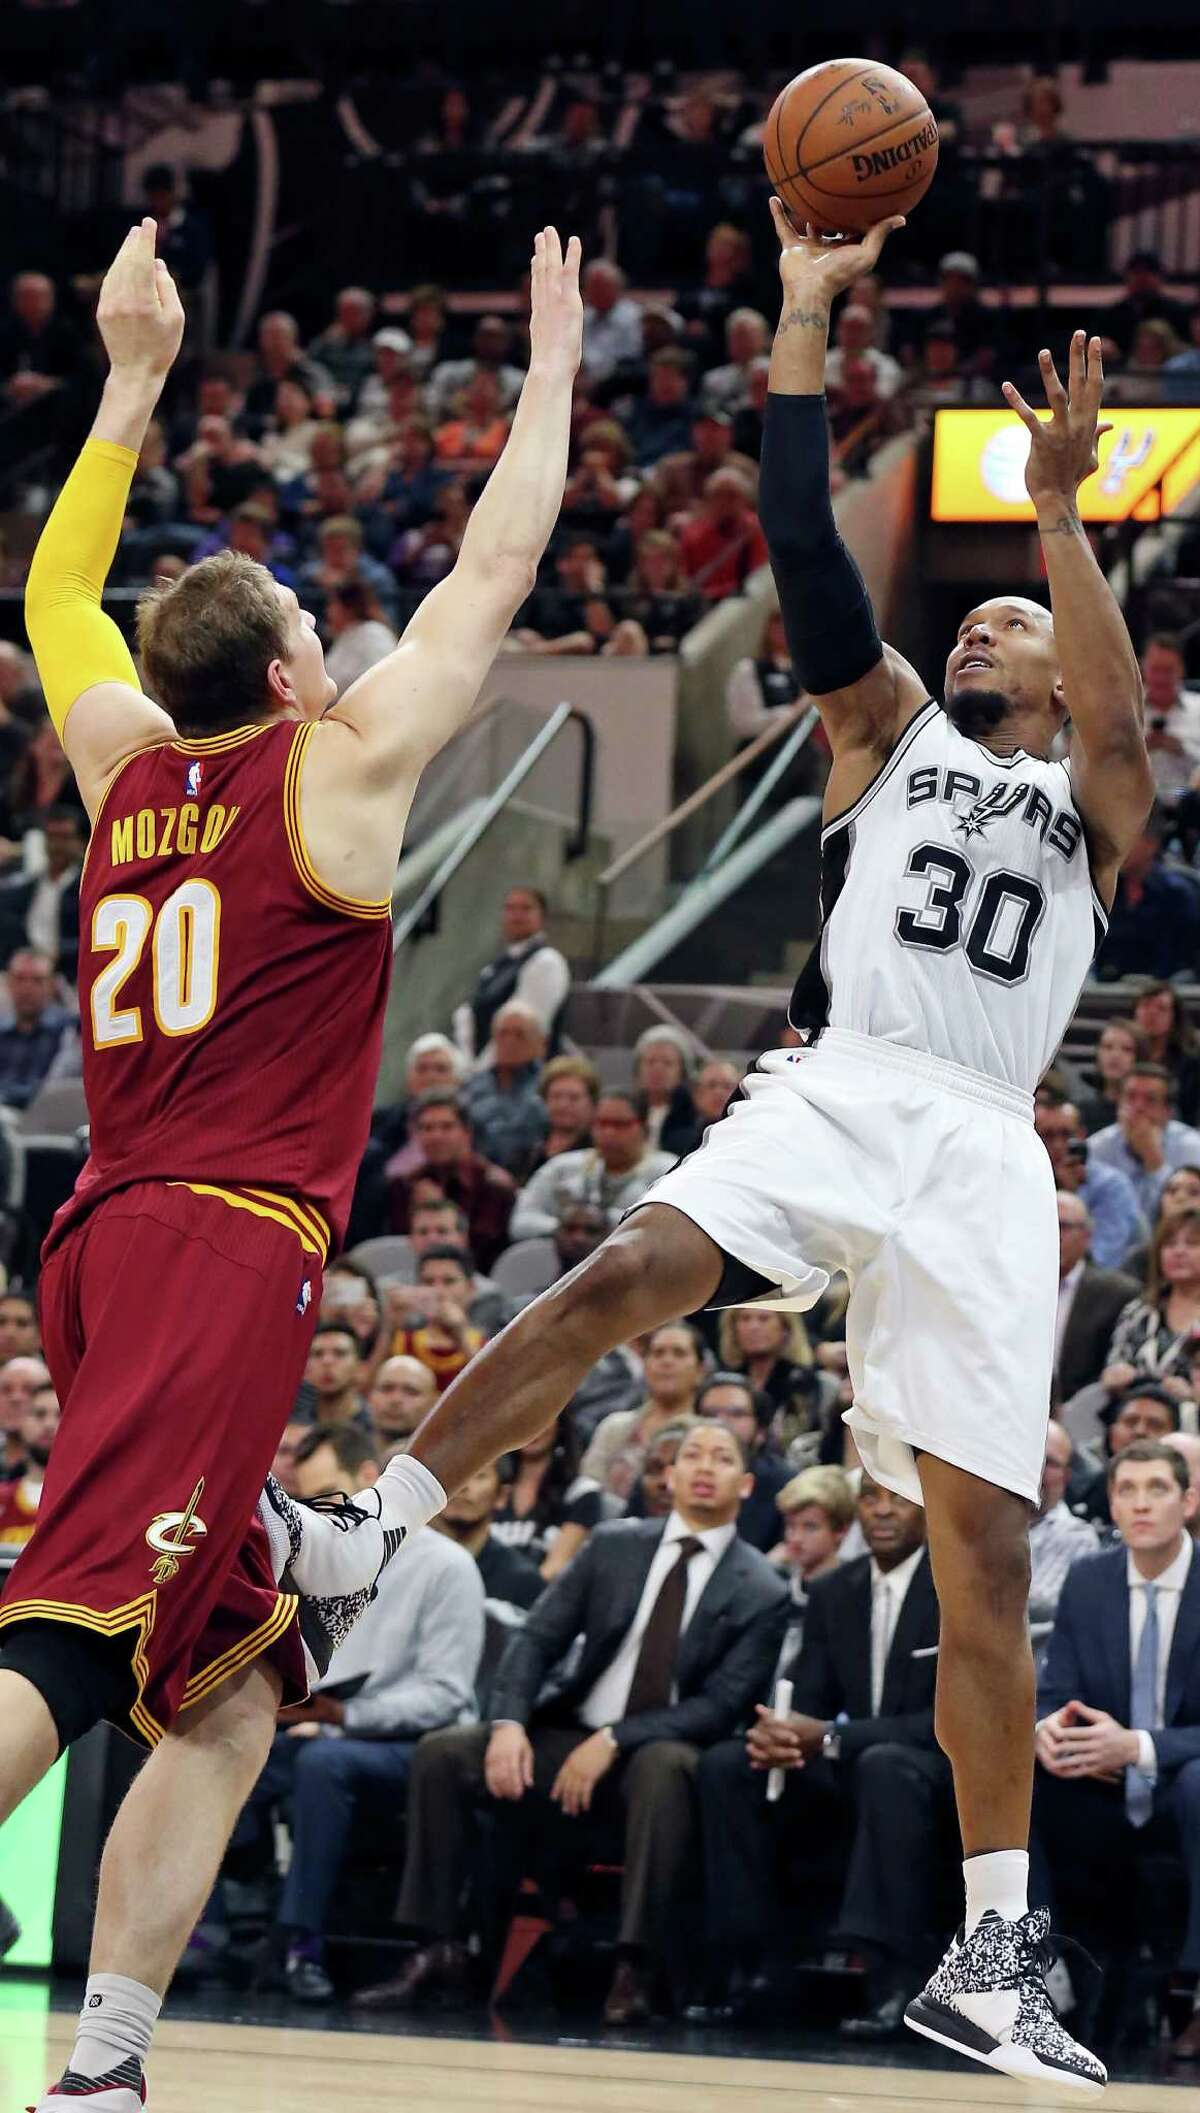 Spurs' David West shoots around the Cleveland Cavaliers' Timofey Mozgov during second half action on Jan. 14, 2016 at the AT&T Center.